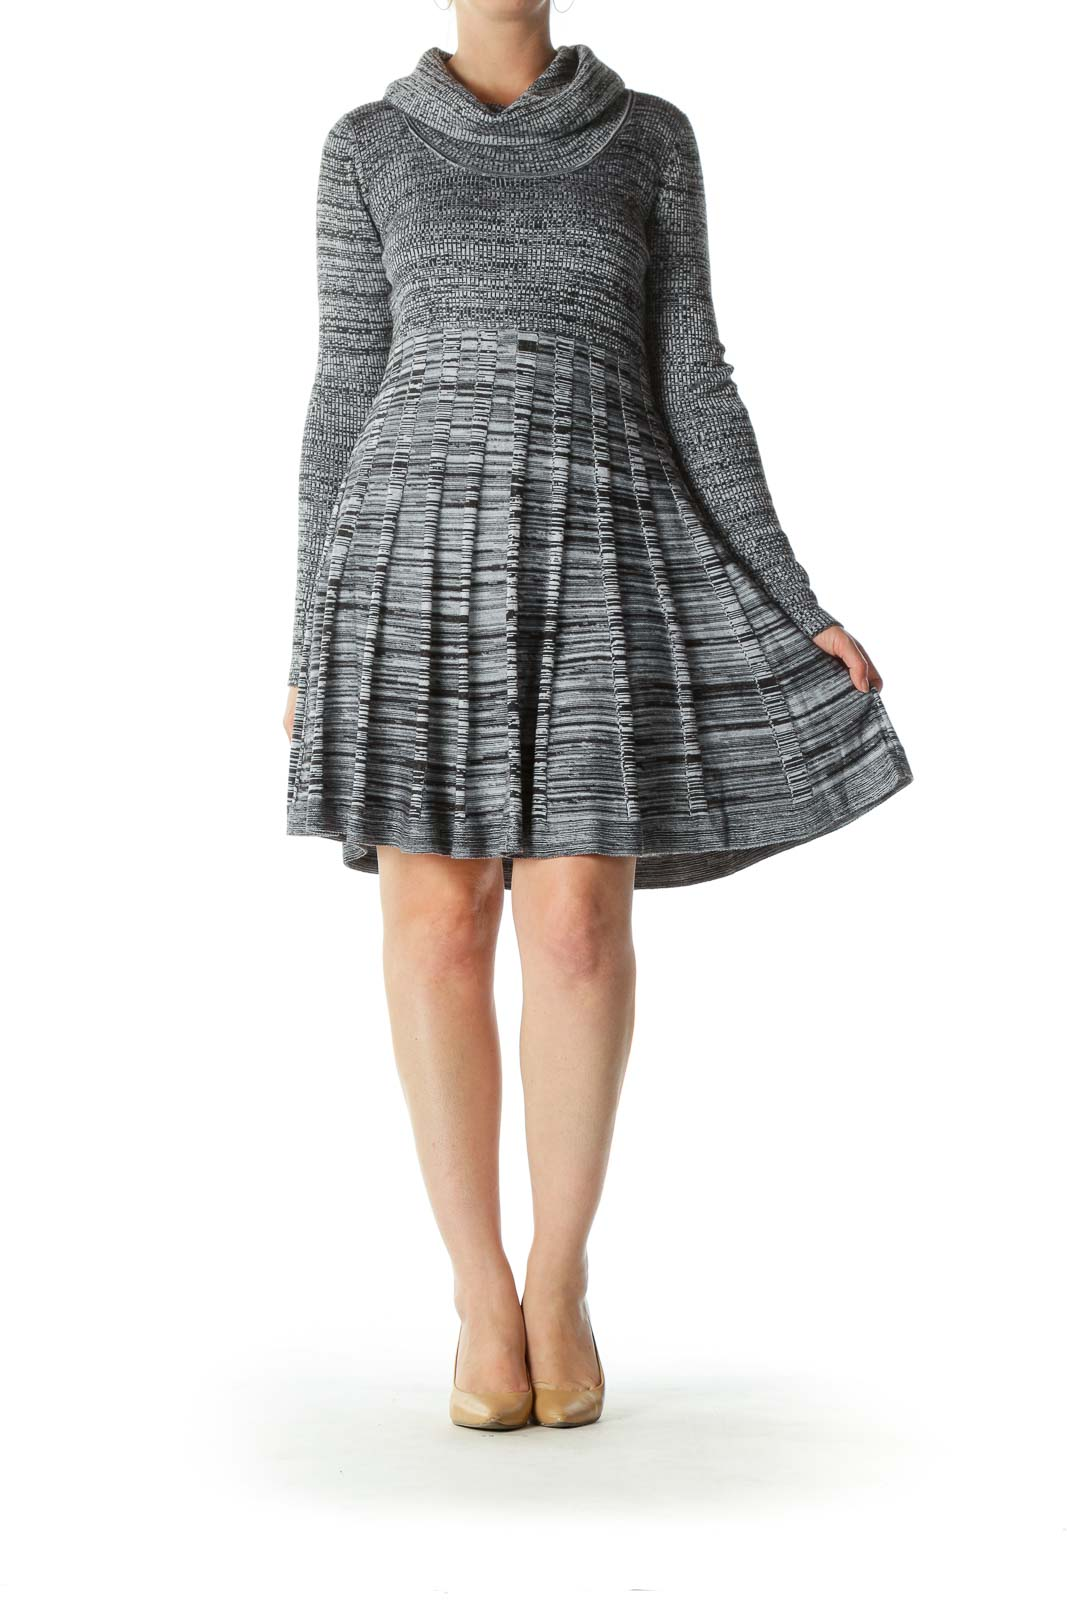 Black Gray Cowl-Neck A-Line Flared Knit Dress